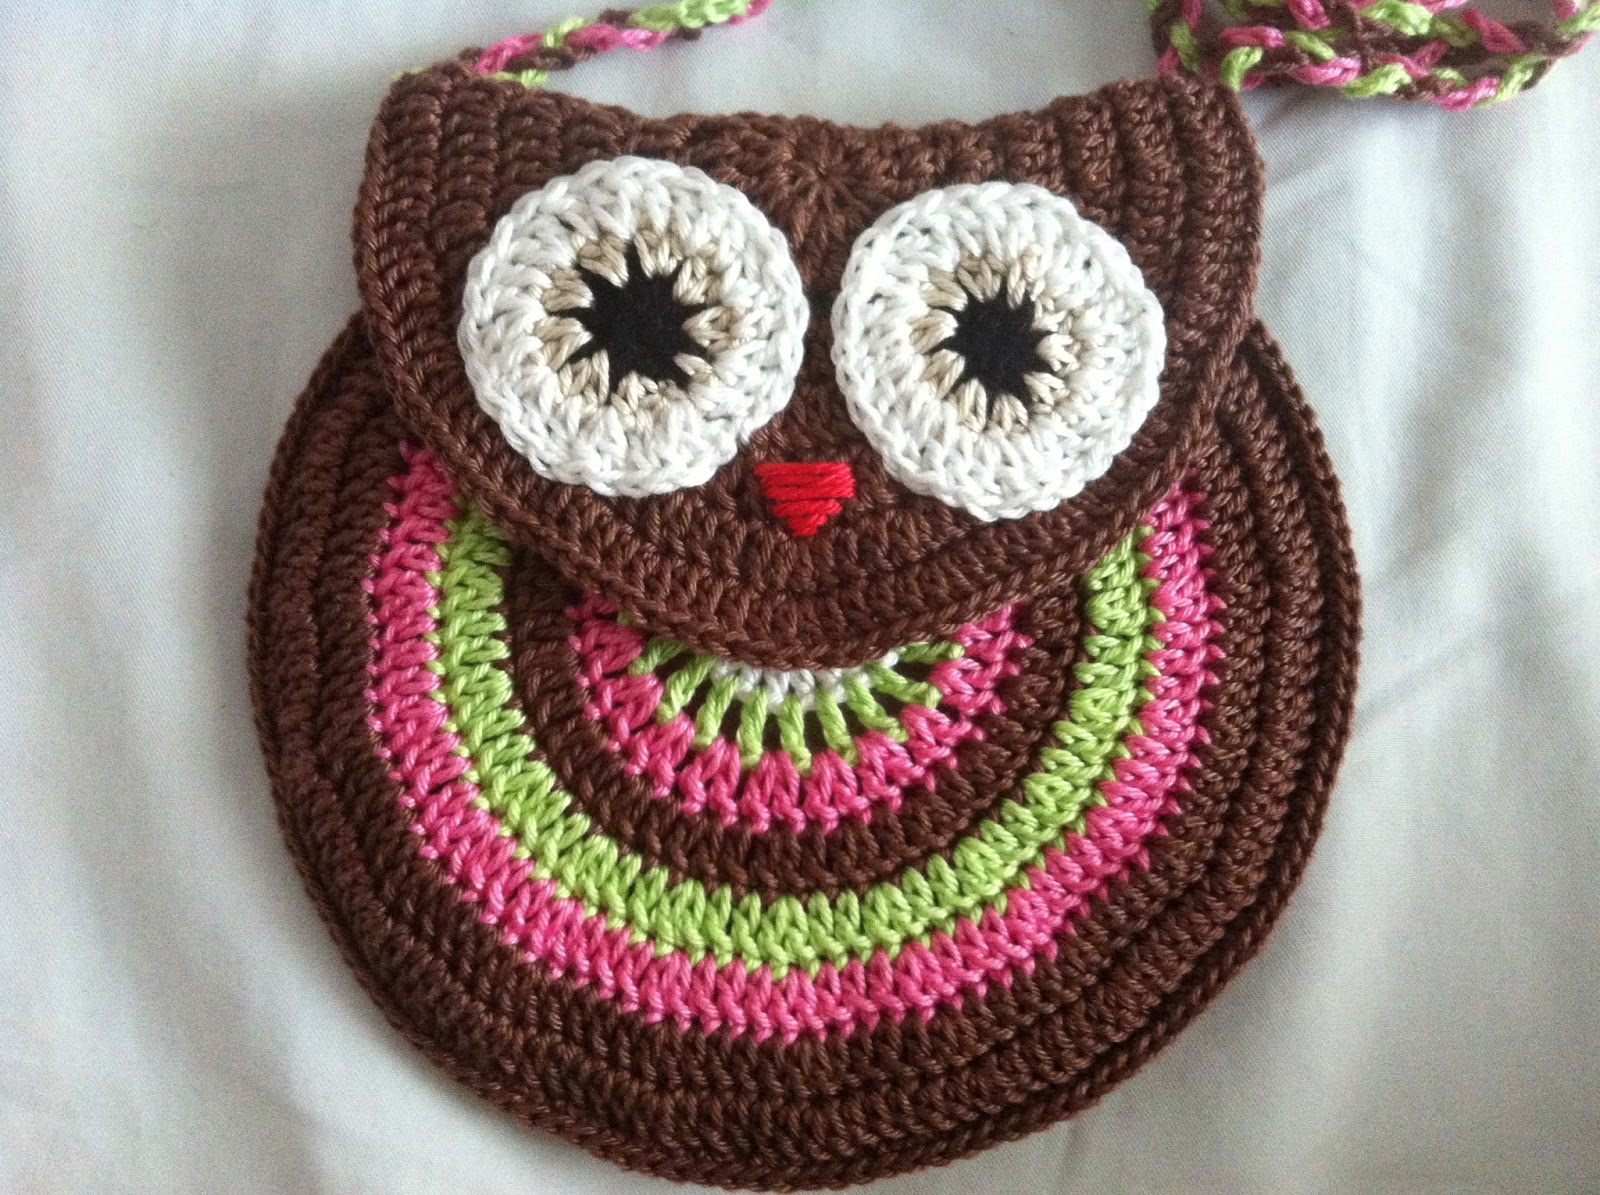 Crochet Purse Patterns Free : 12 free crochet bag patterns Car Pictures